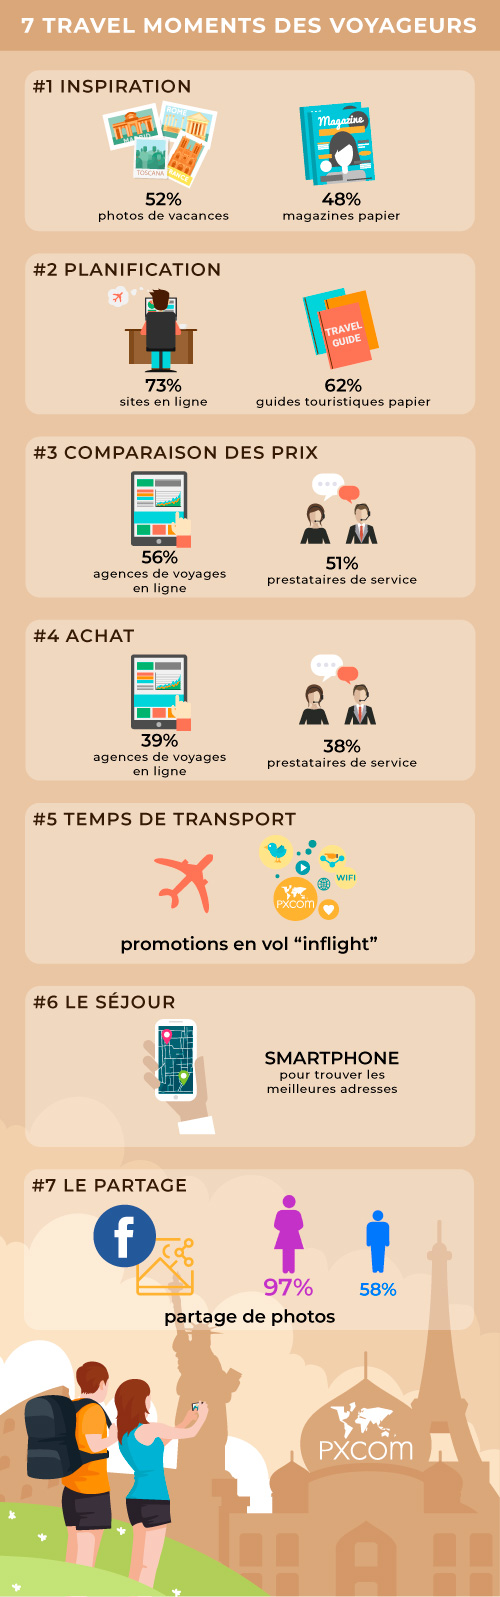 infographie moments voyageur